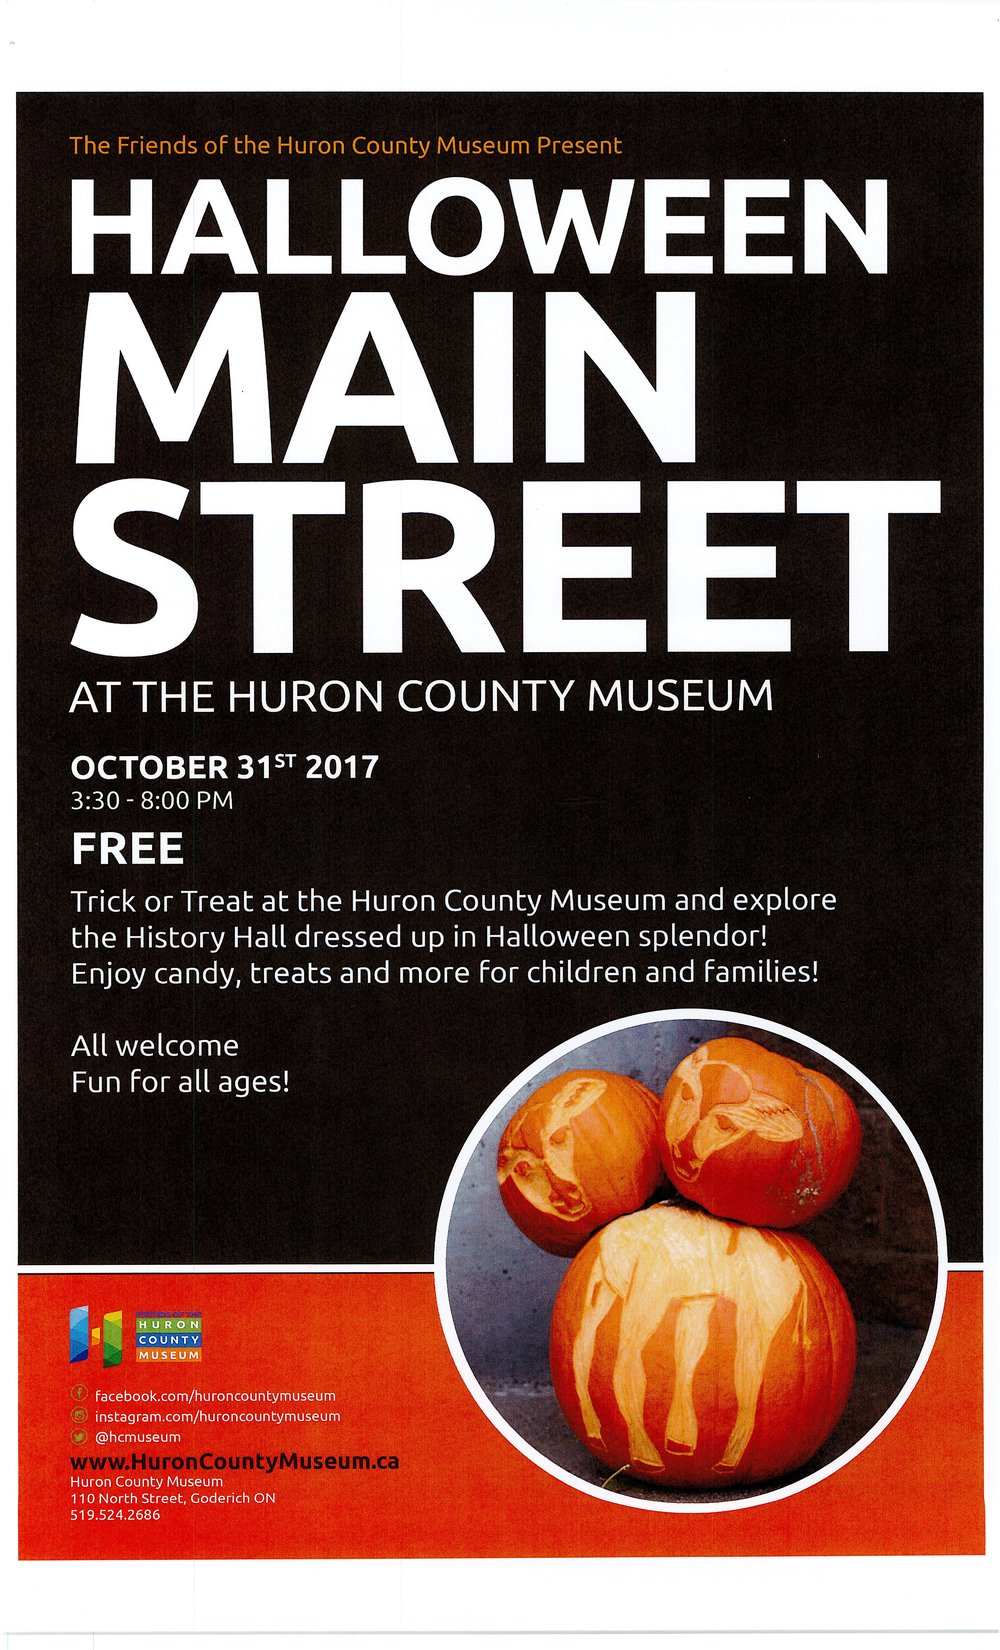 Halloween MAIN STREET at the Huron County Museum